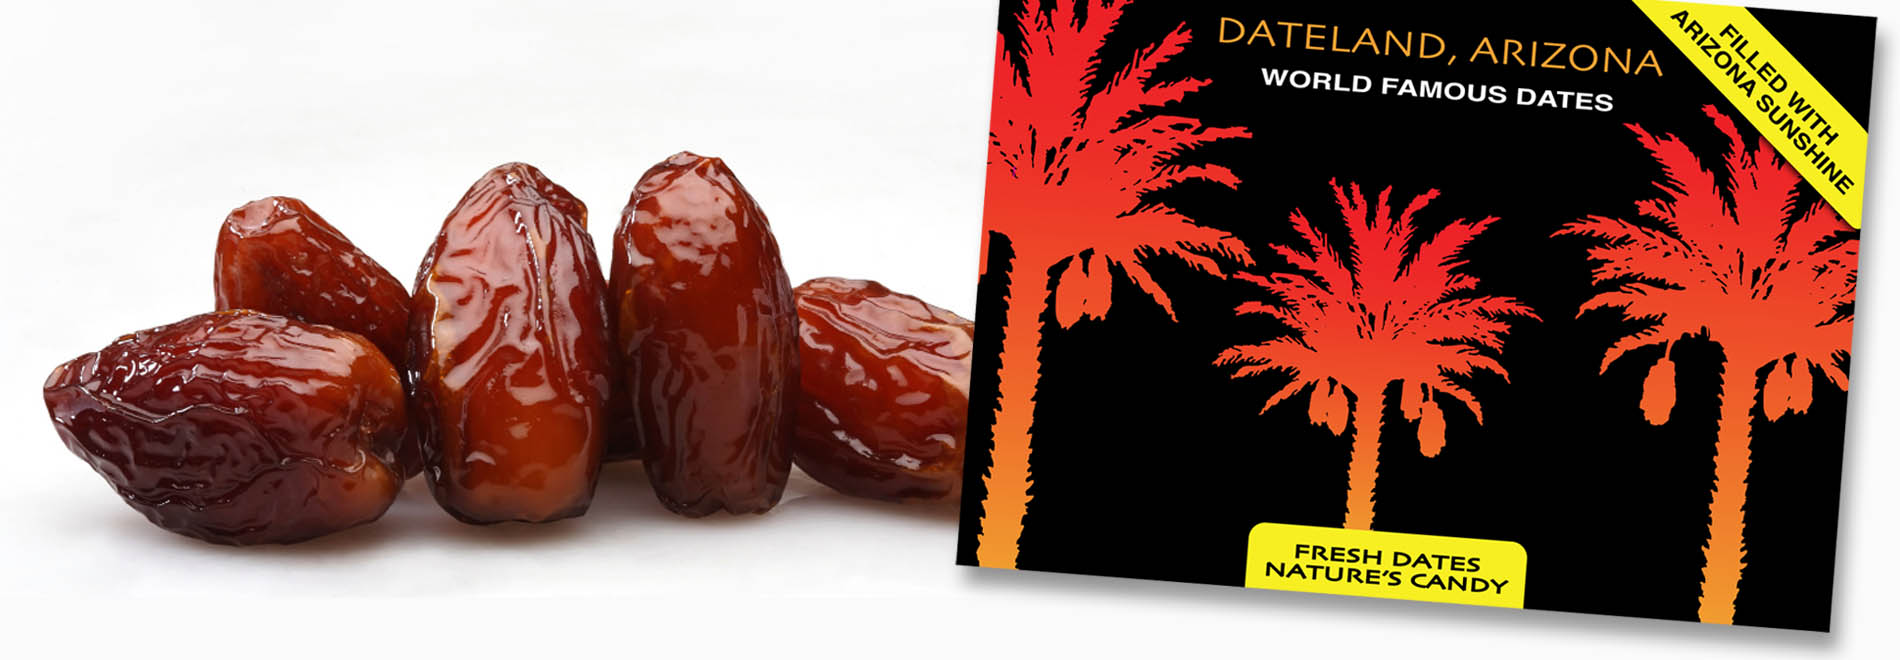 Delicious Boxed Dates Direct from the Grower